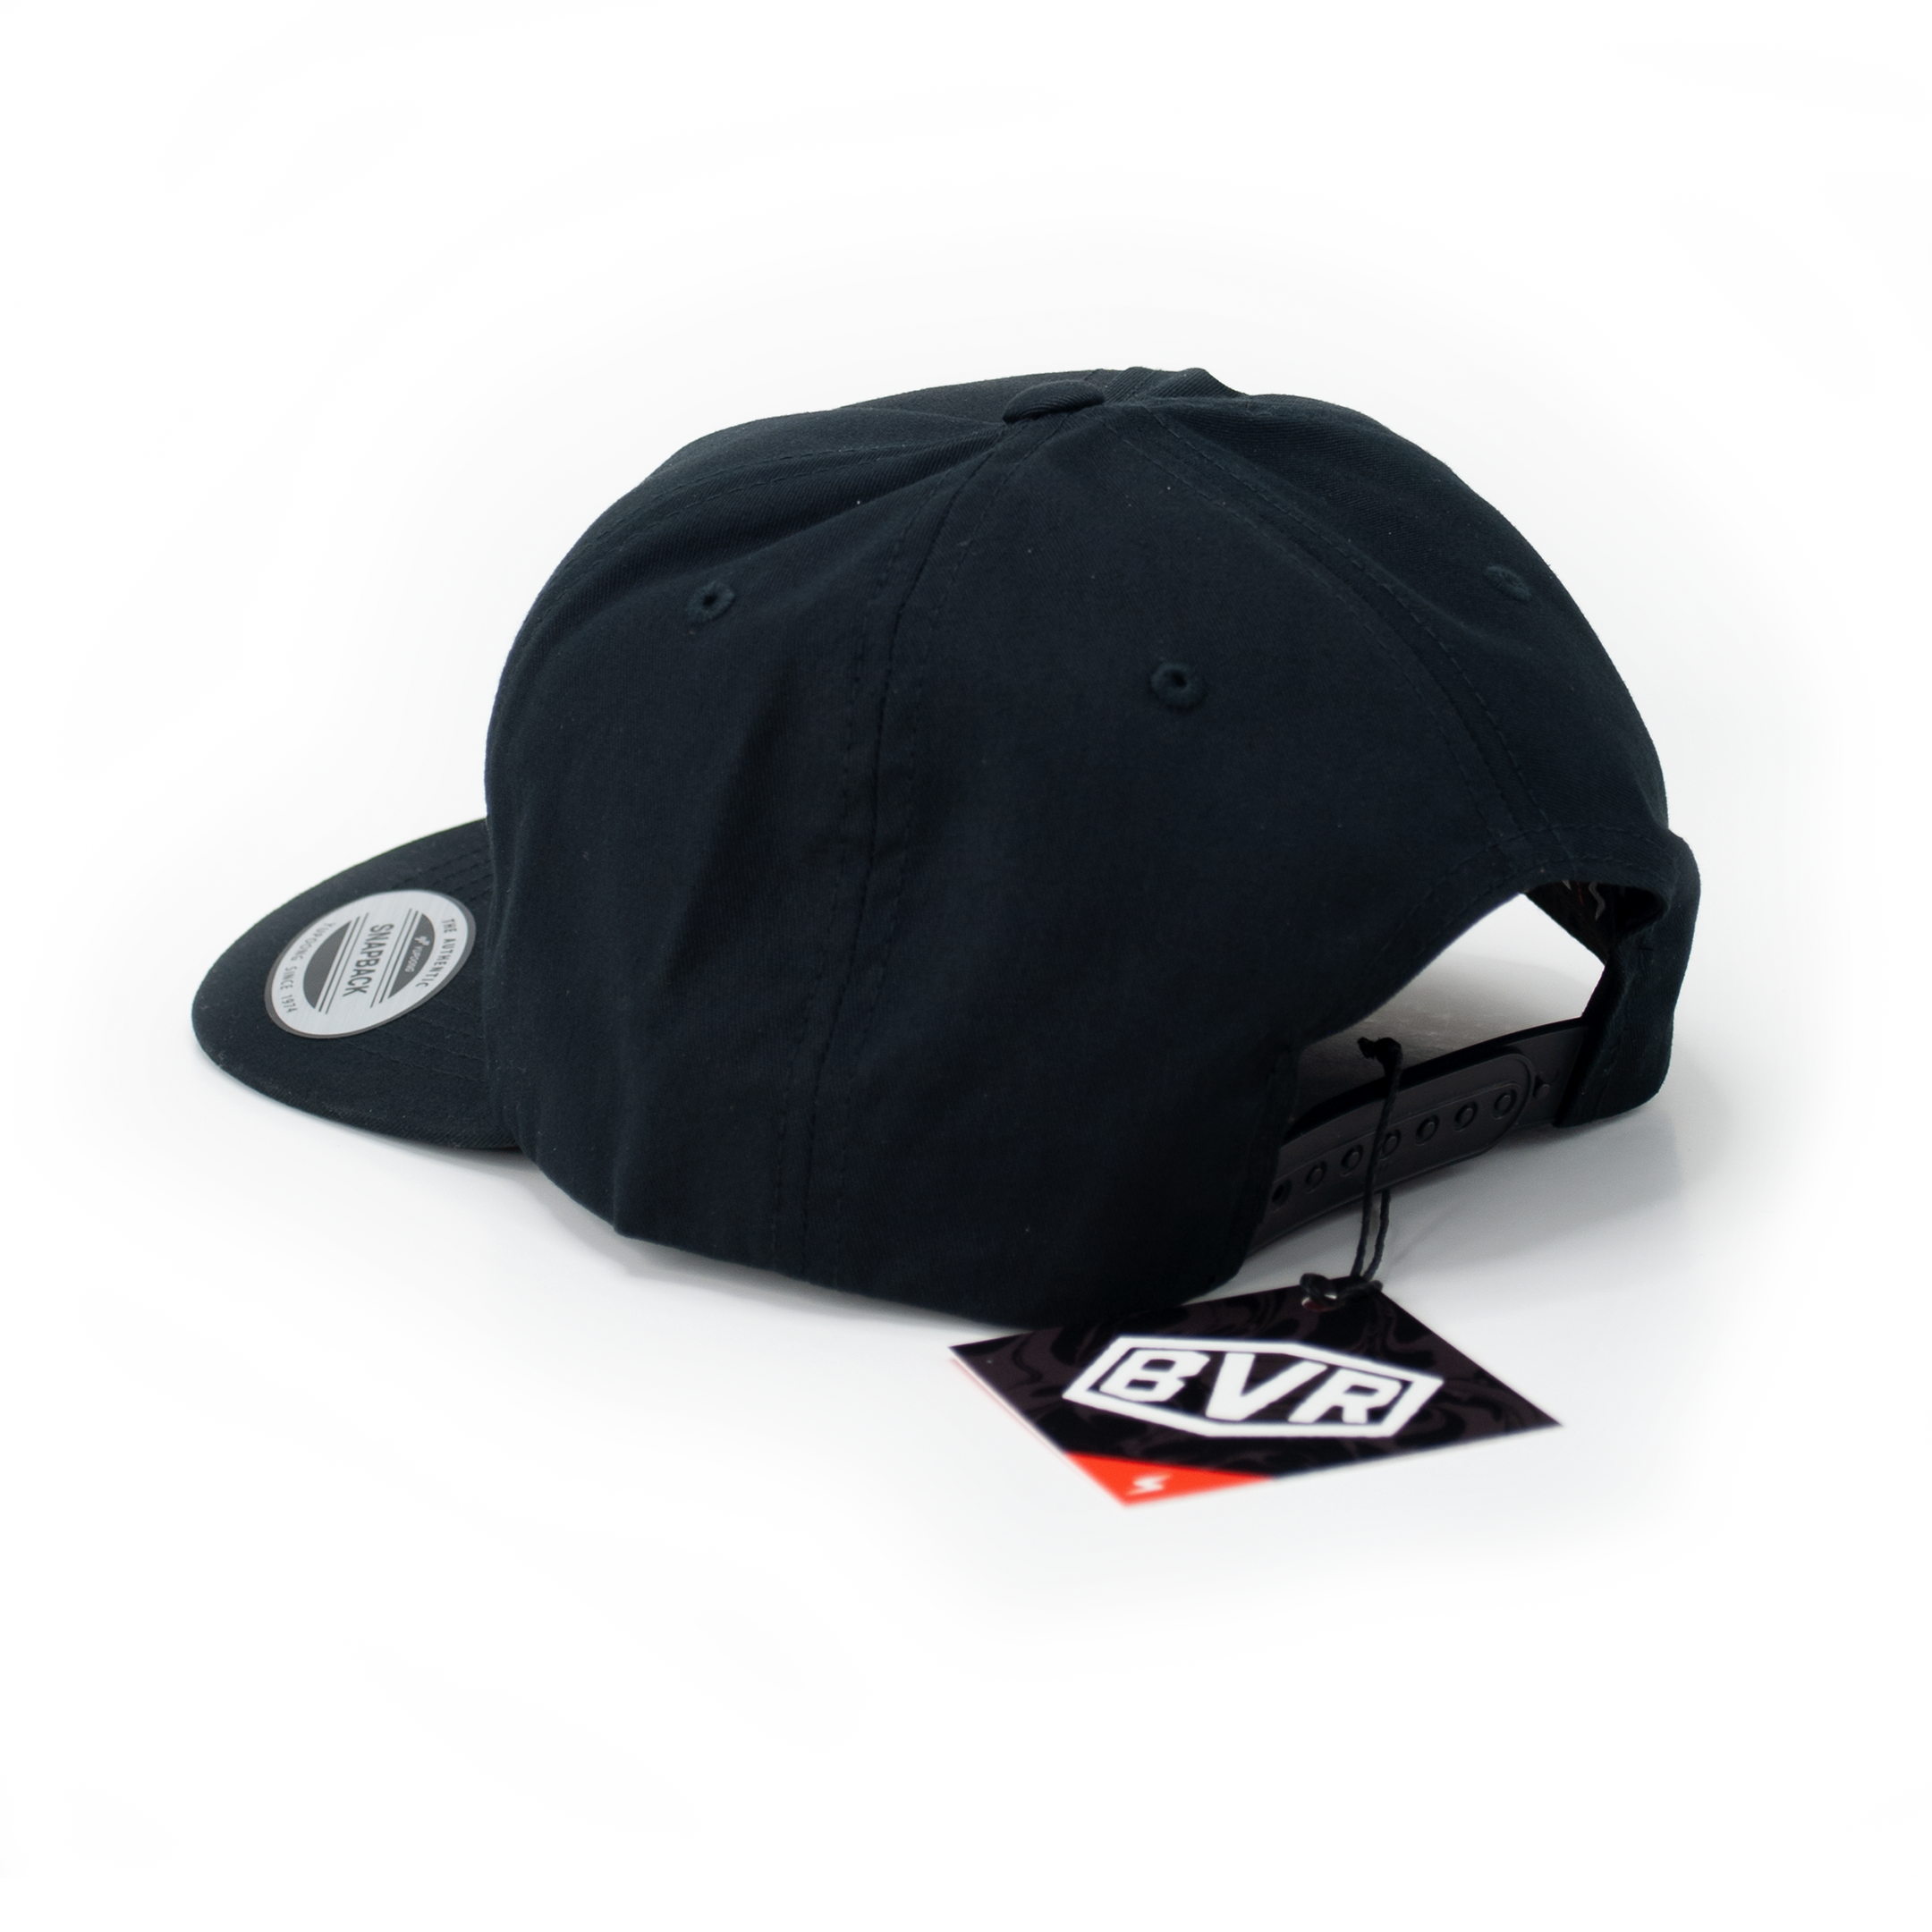 432nd Interceptor Black Retro Trucker